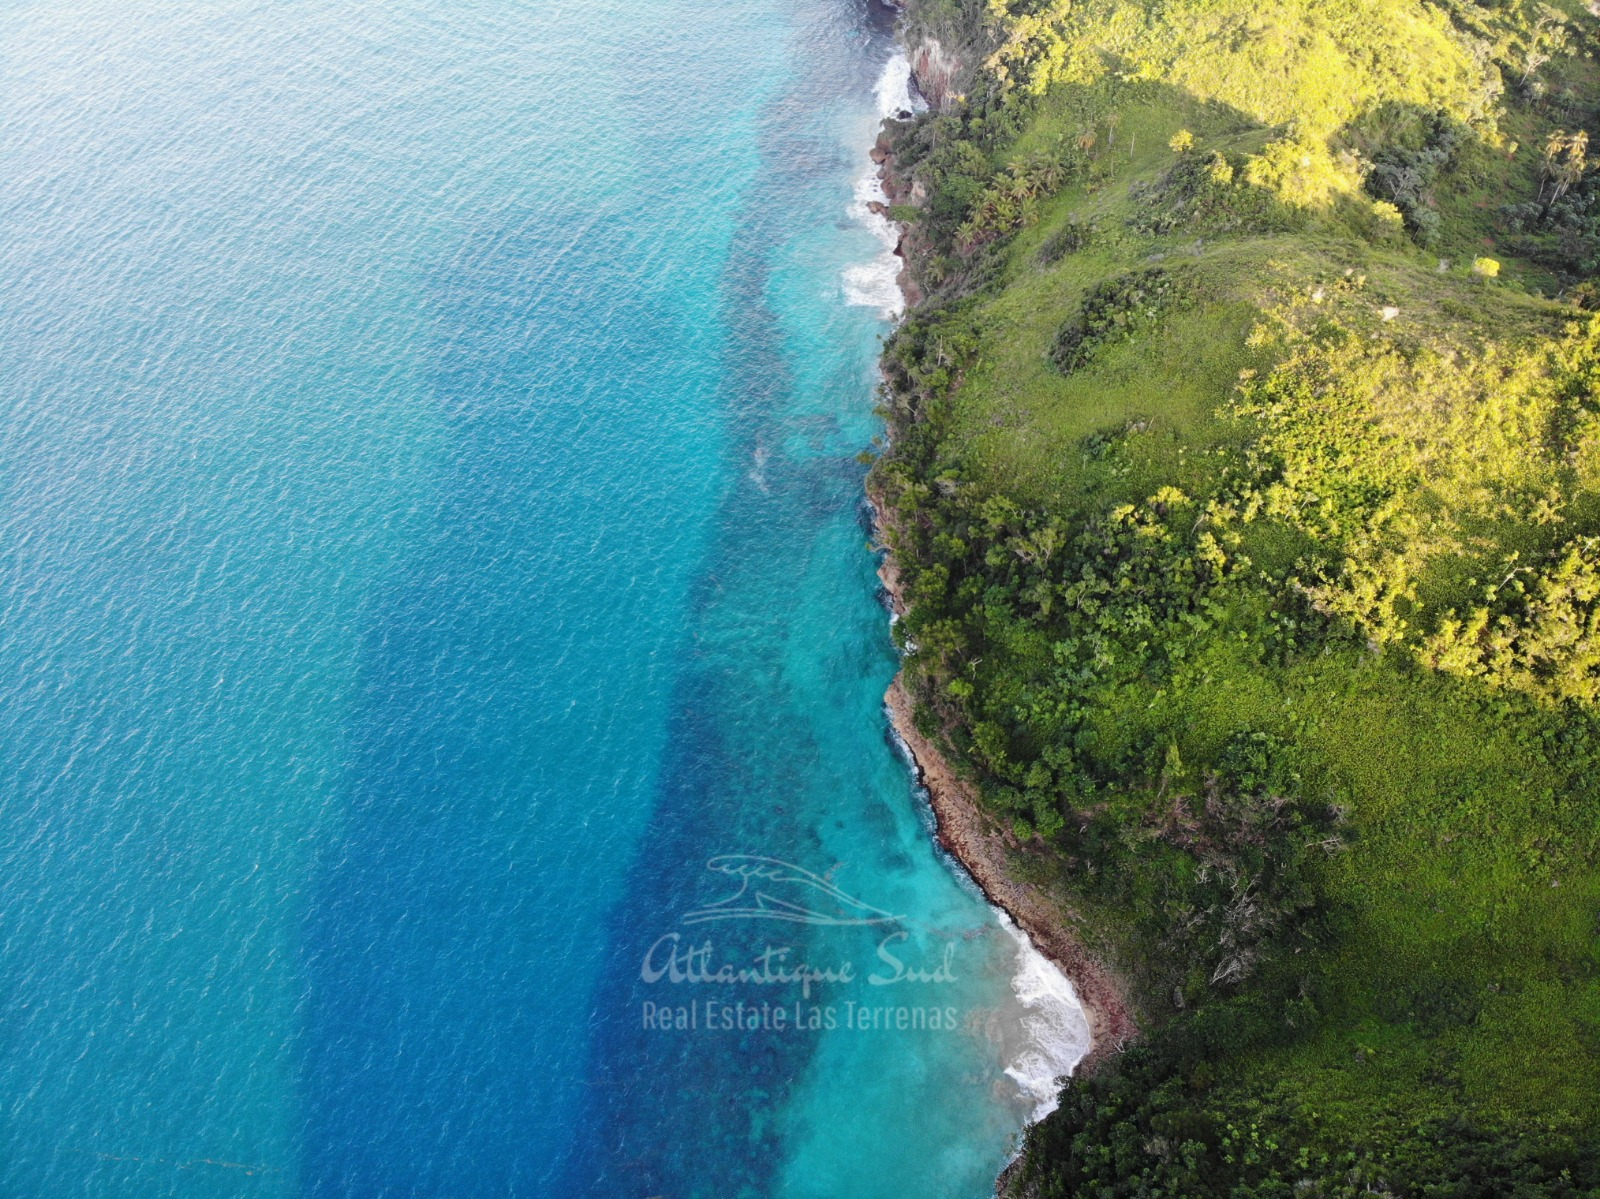 Cliff Land for Sale Las Terrenas 19.jpeg